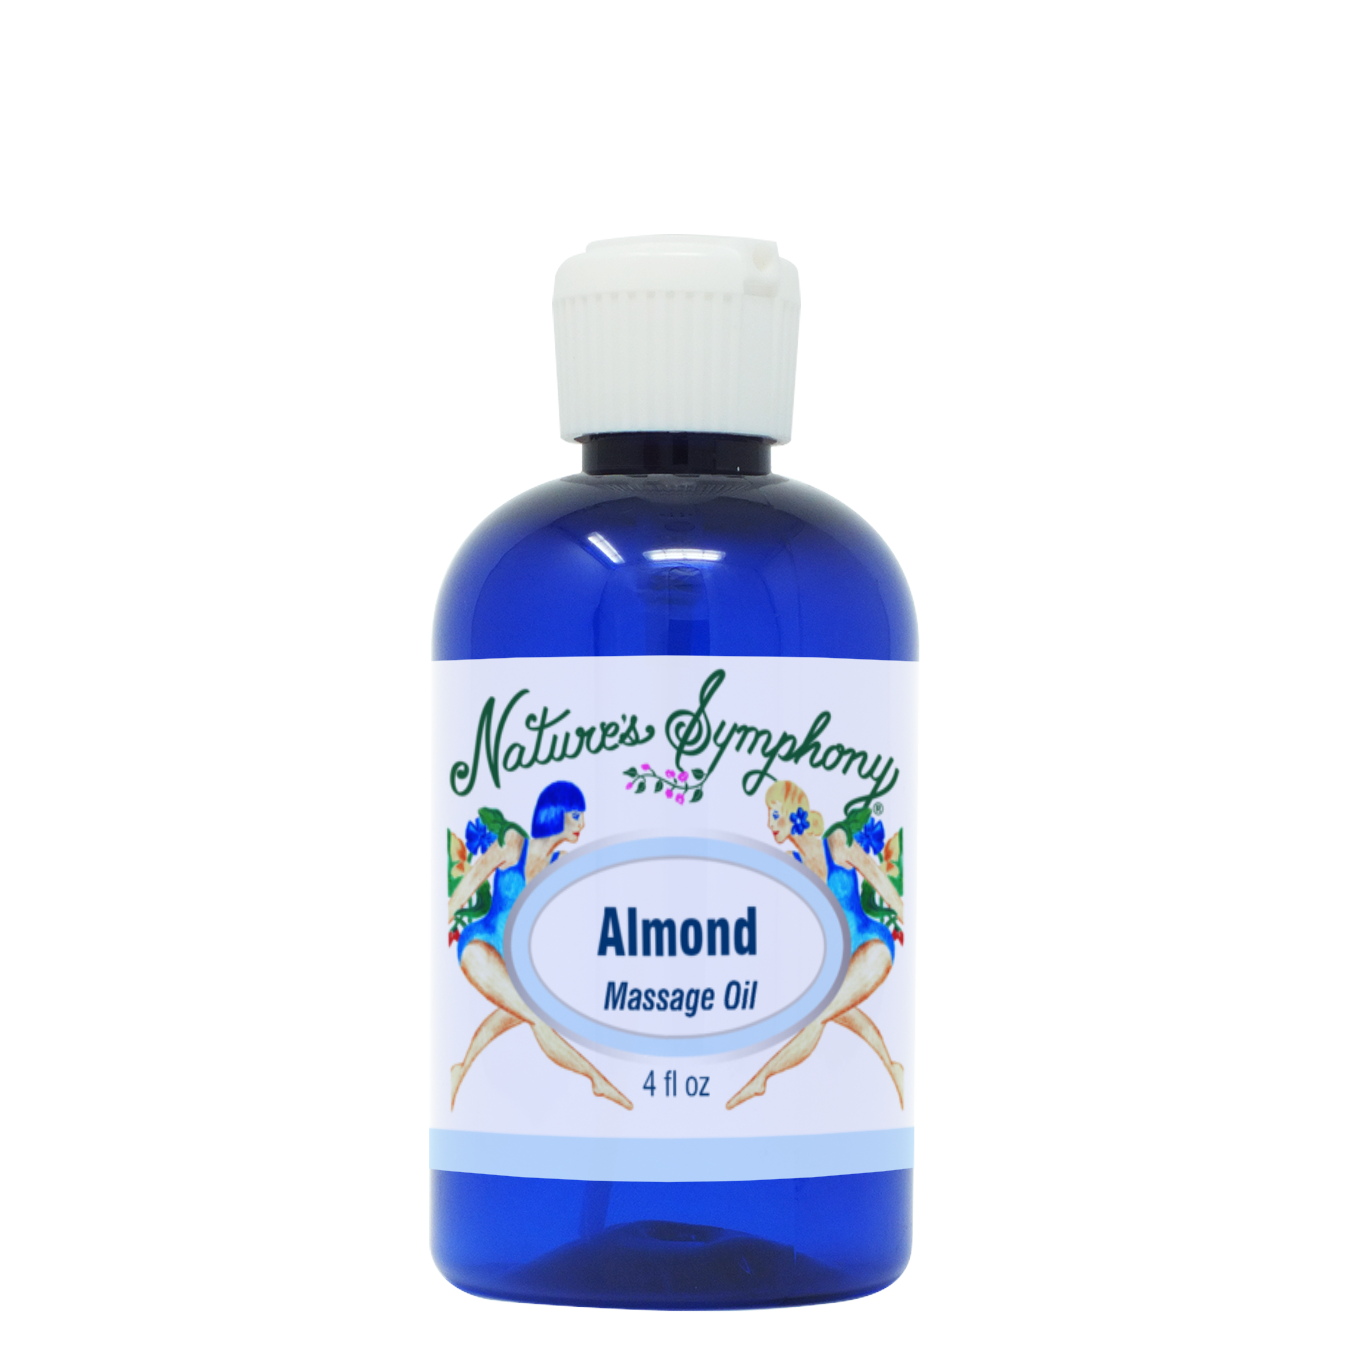 Almond, Unscented Massage Oil - 4 fl. oz. (118ml)